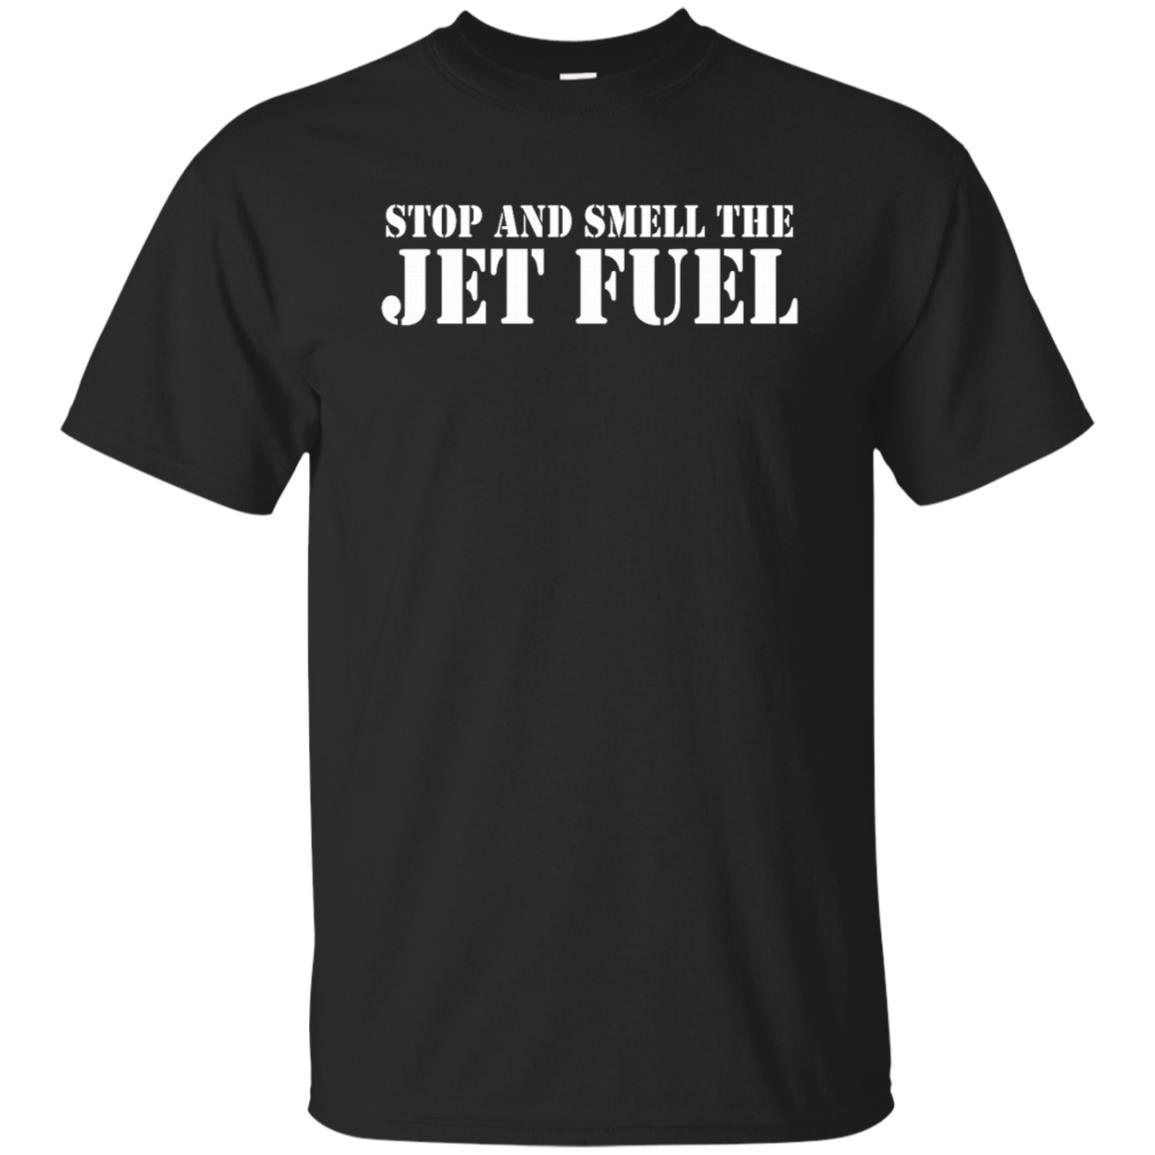 Stop and Smell the Jet Fuel Unisex Short Sleeve